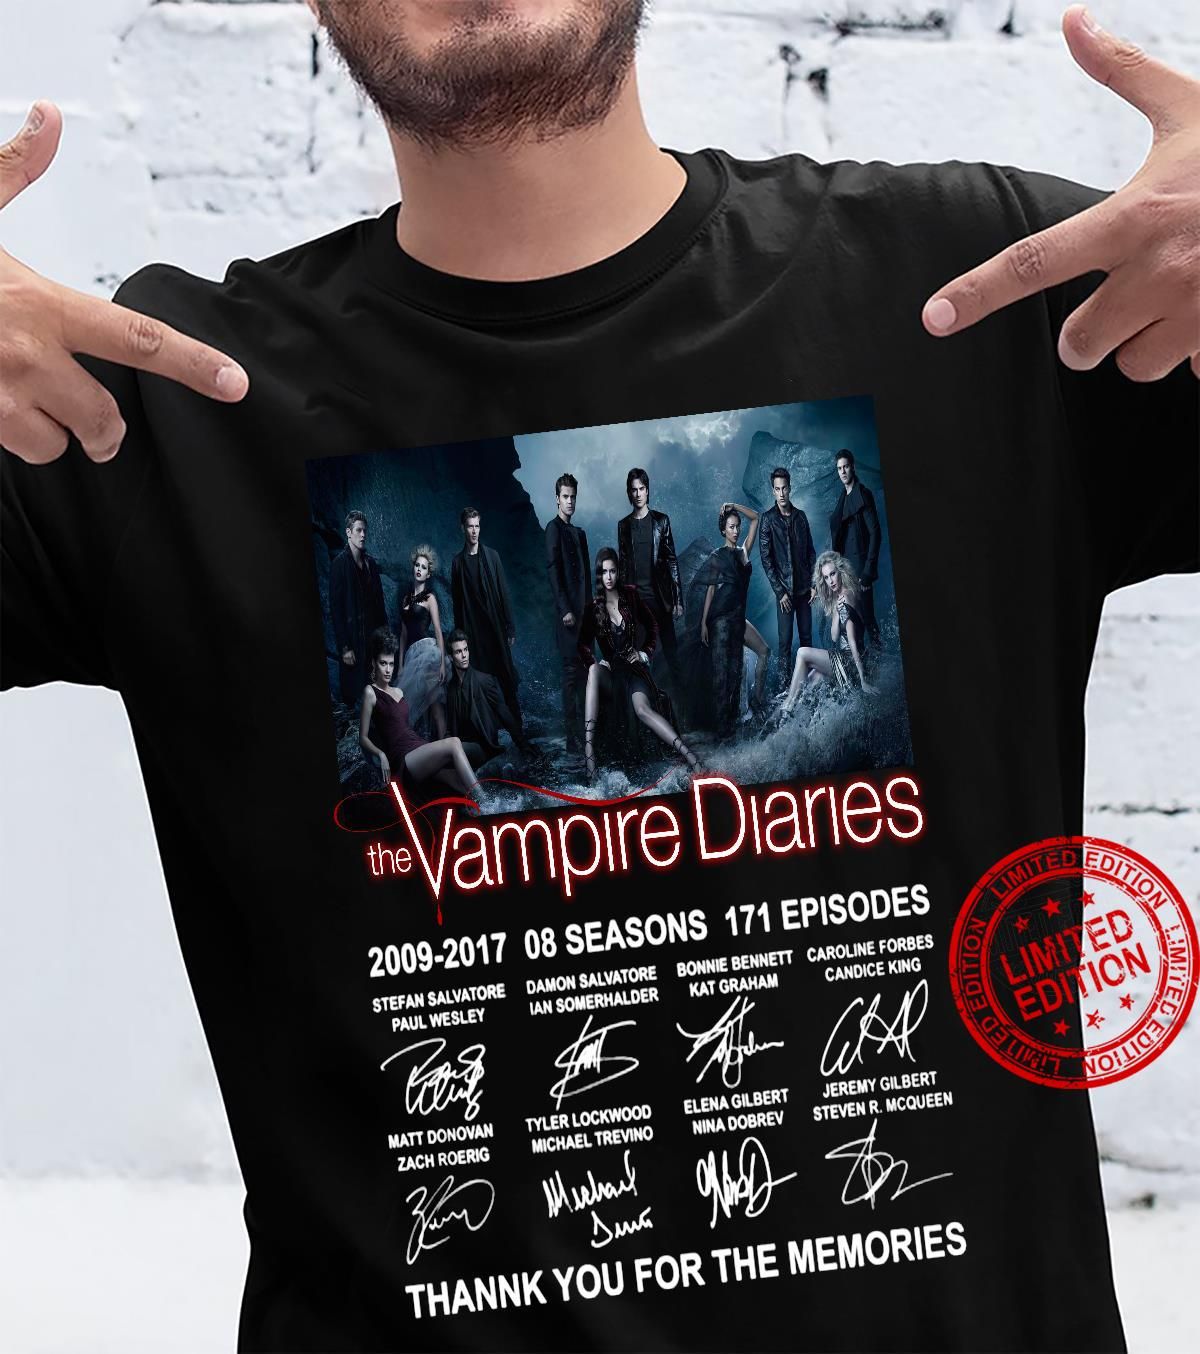 Thank you for the memories the vampire diaries 2009-2017 8 seasons 171 episodes signatures shirt